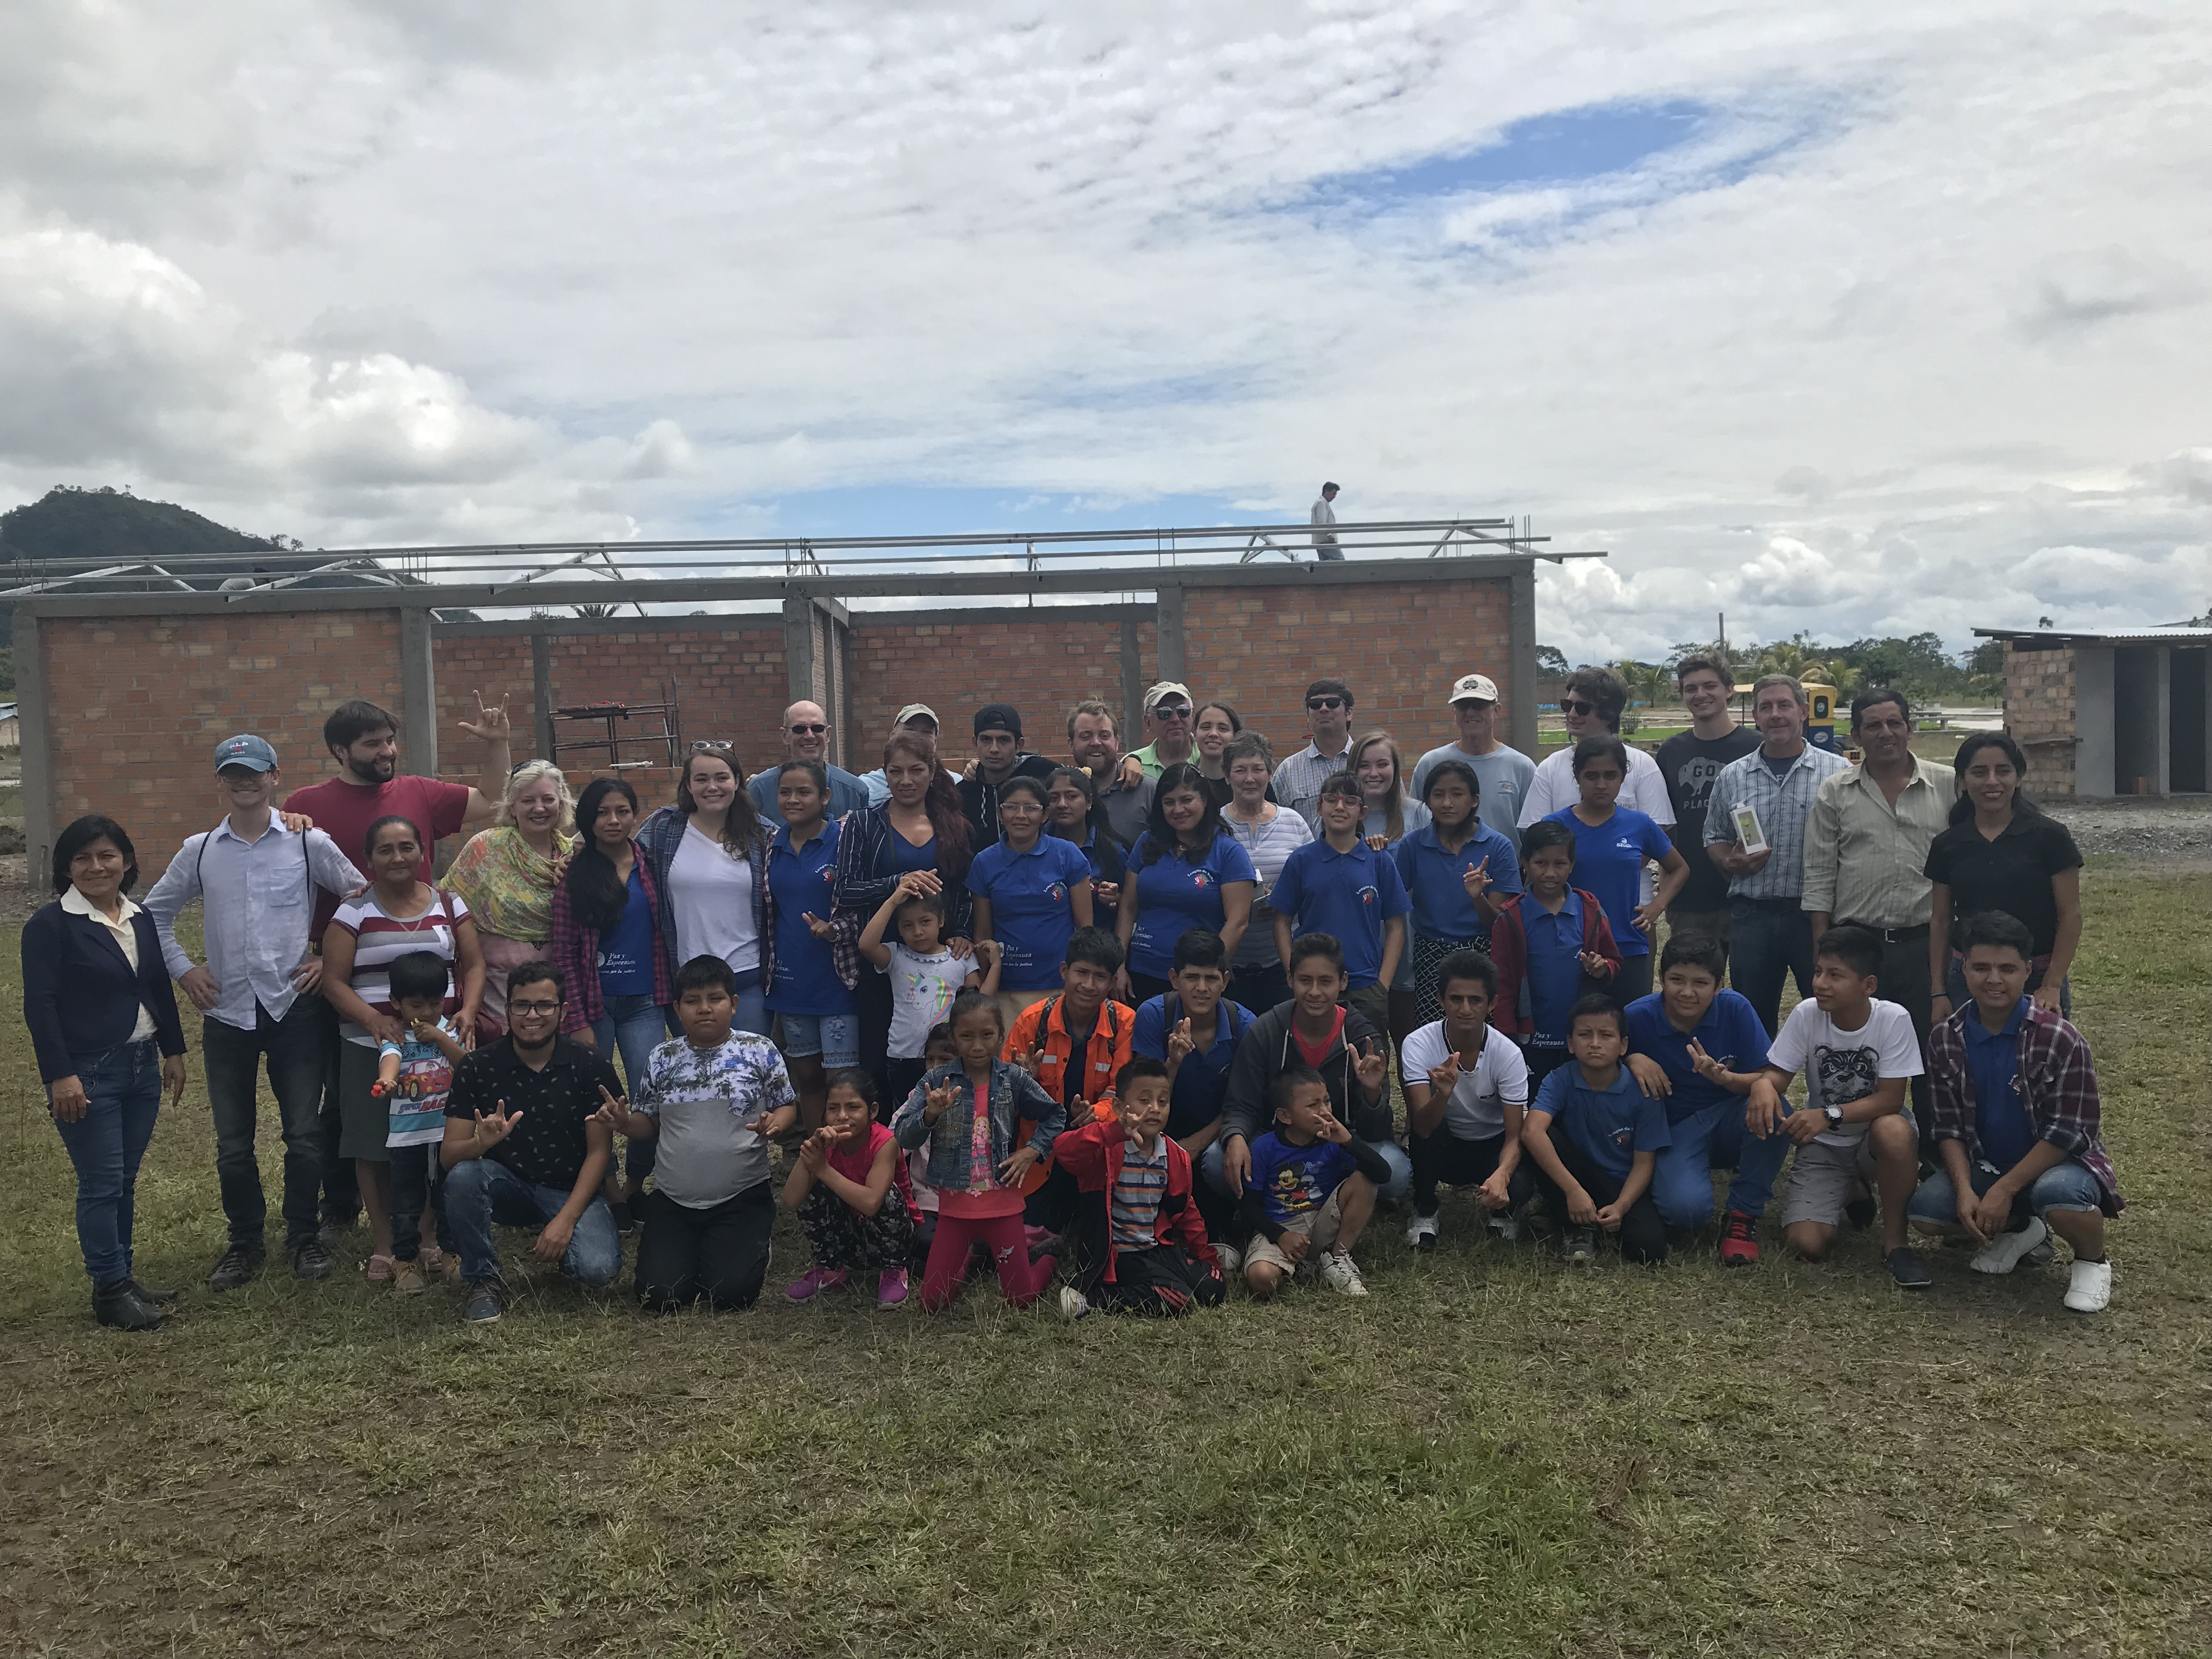 The mission team from Brownson Memorial Presbyterian Church (Southern Pines, NC) stand together with students and parents in front of the nearly finished school in August.